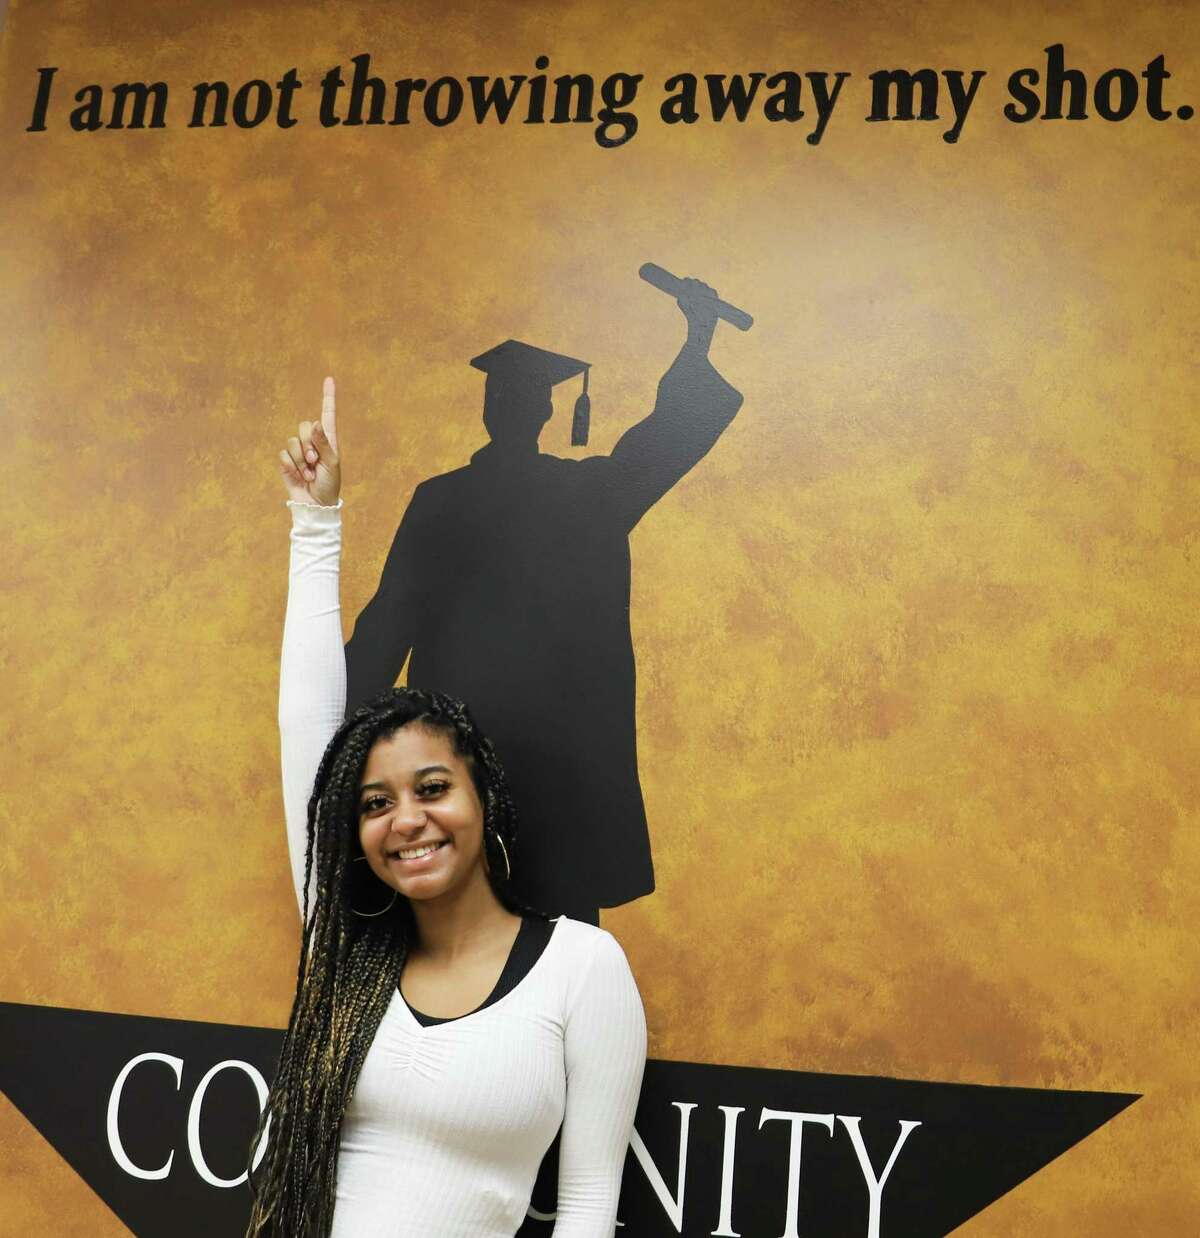 Last August, Shantel McNeal was close to dropping out of high school. The 18-year-old Pasadena ISD student achieved her diploma in November through Community School, an alternative campus in the district.